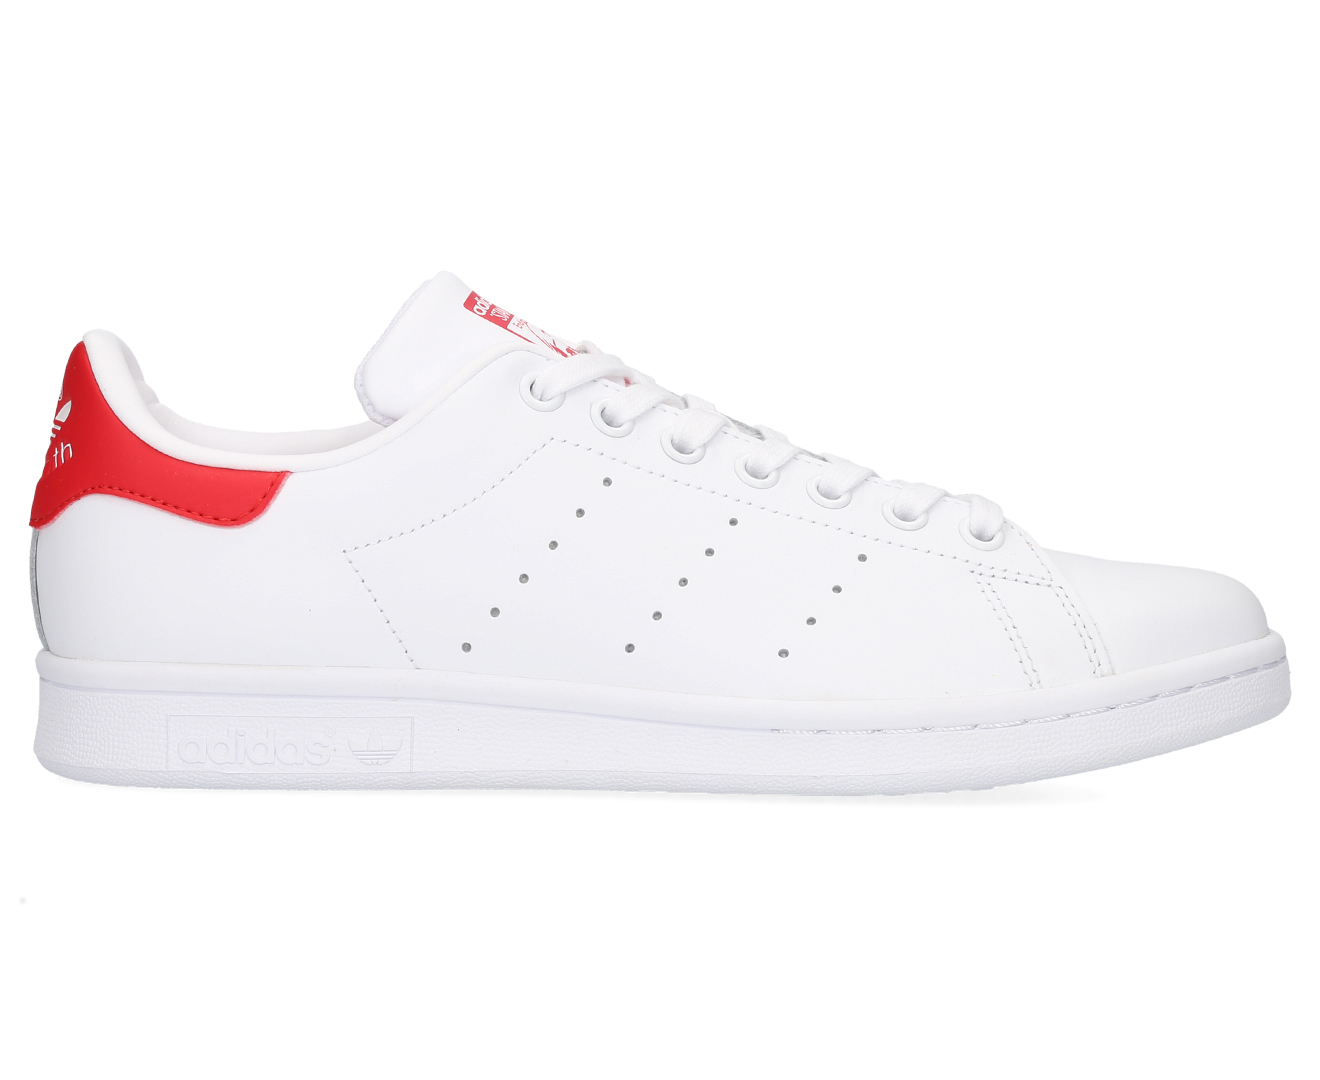 huge selection of a8a4c b5b8b Details about Adidas Men's Original Stan Smith Shoes - Red/White